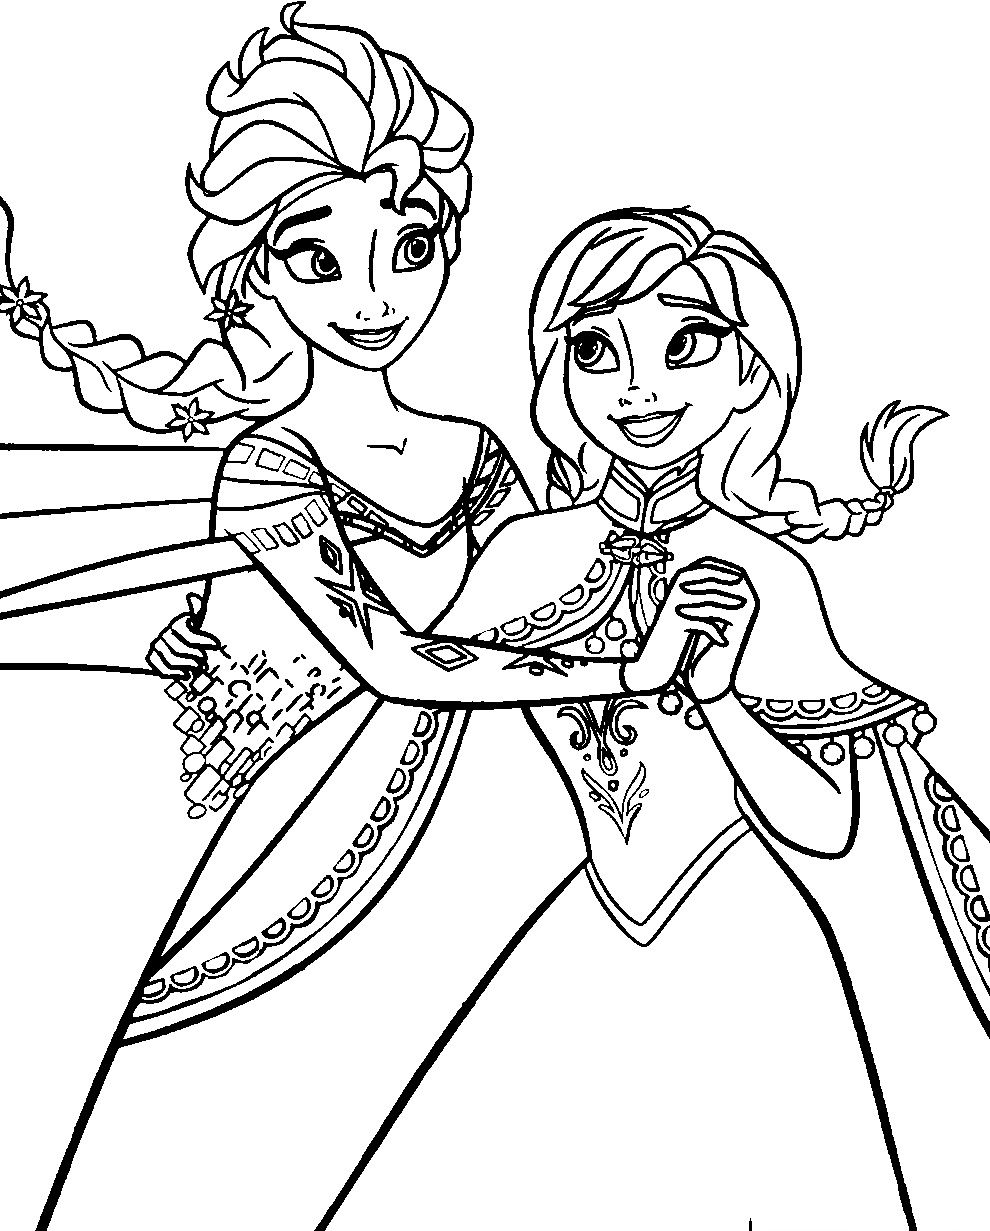 Frozen Elsa Coloring Pages Easy Elsa Coloring Pages Disney Princess Coloring Pages Cartoon Coloring Pages